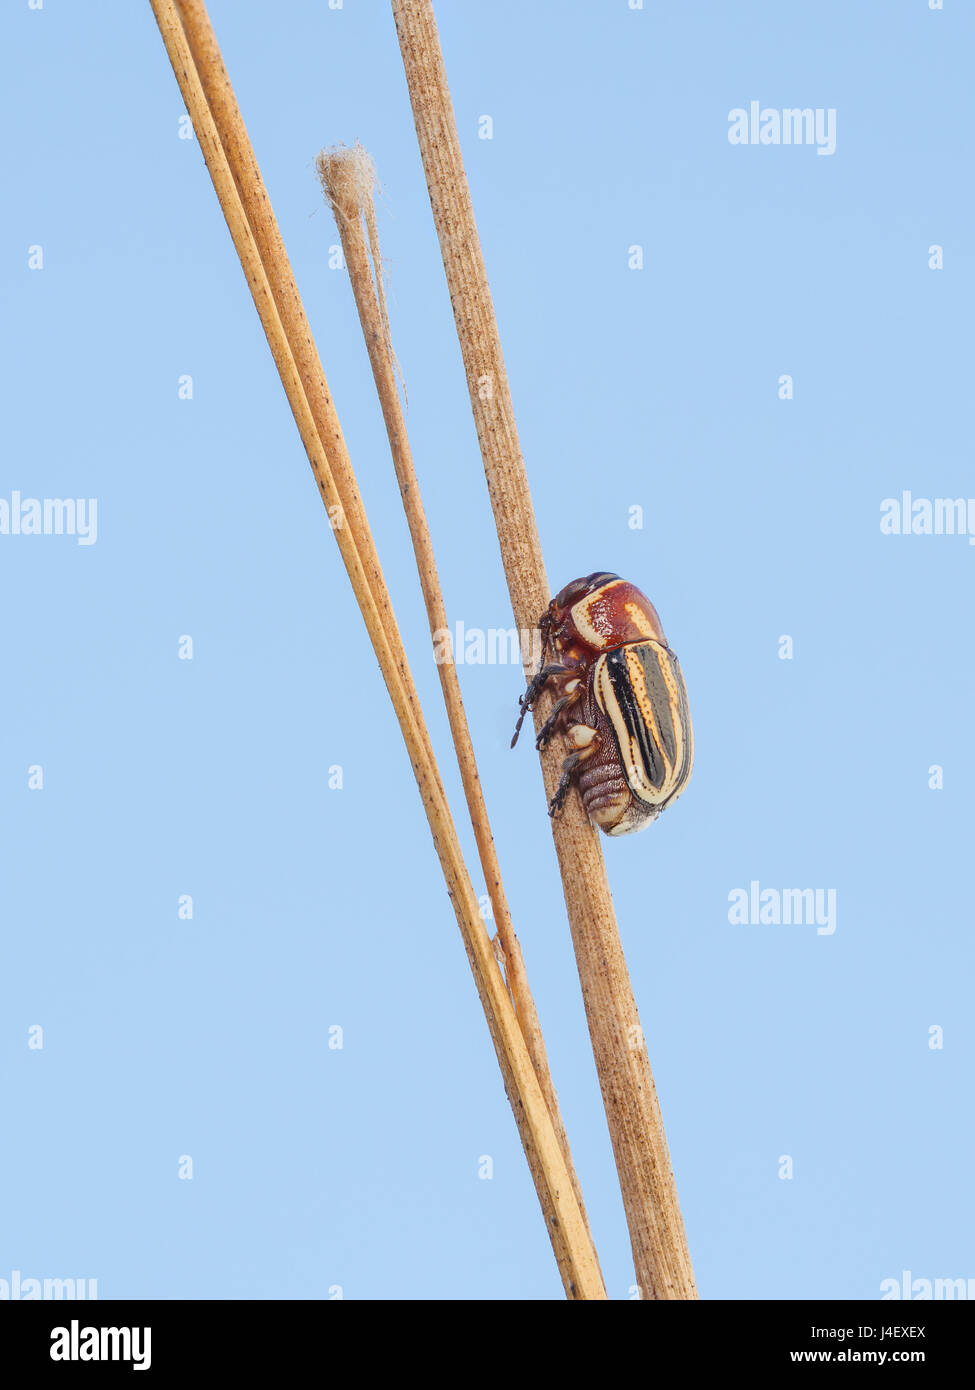 A Scriptured Leaf Beetle (Pachybrachis sp.) perches on a plant stem. - Stock Image